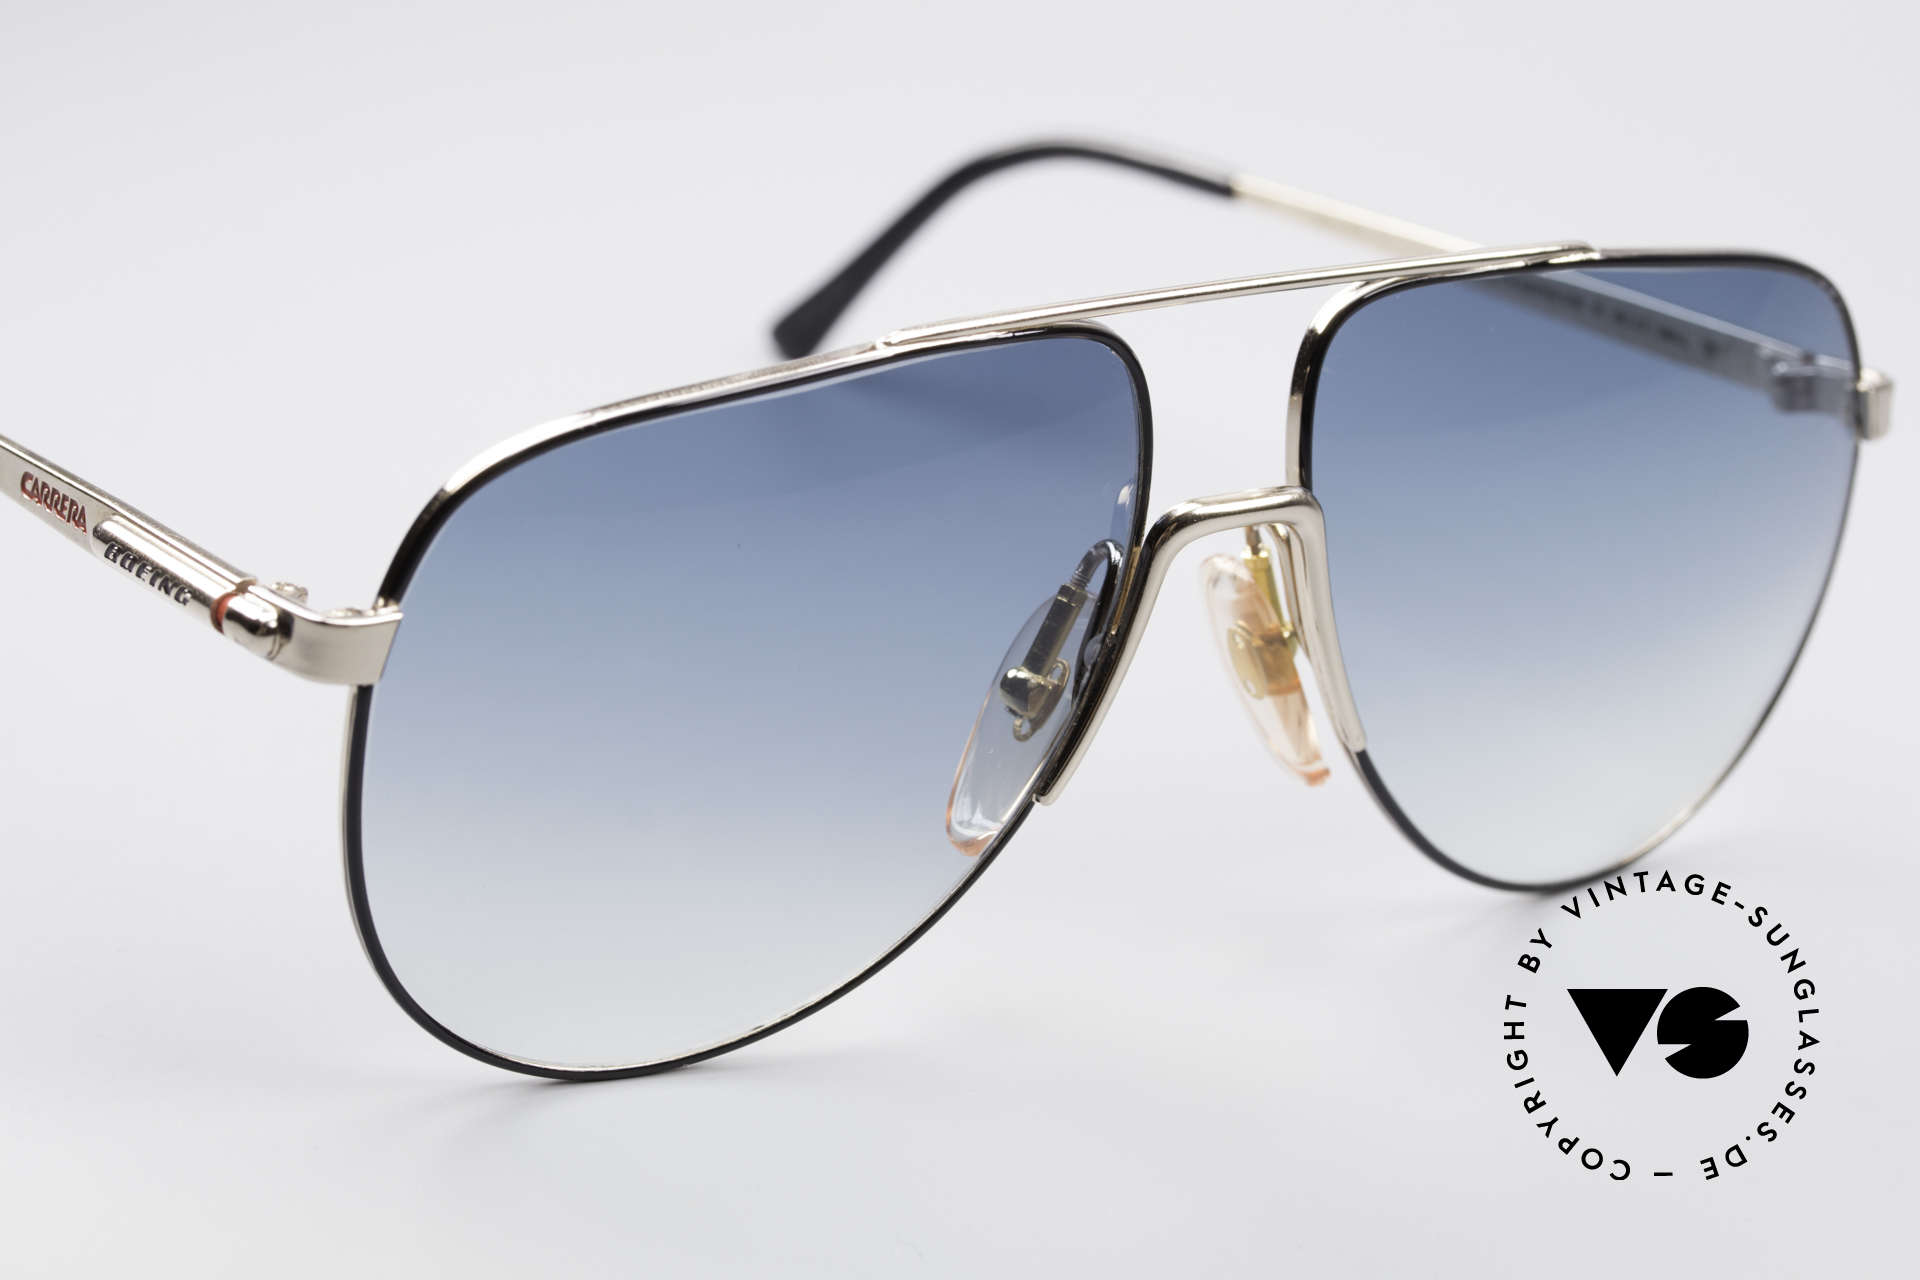 Boeing 5730 True Aviator 80s Sunglasses, limited-lot production from 1988/89 with serial number, Made for Men